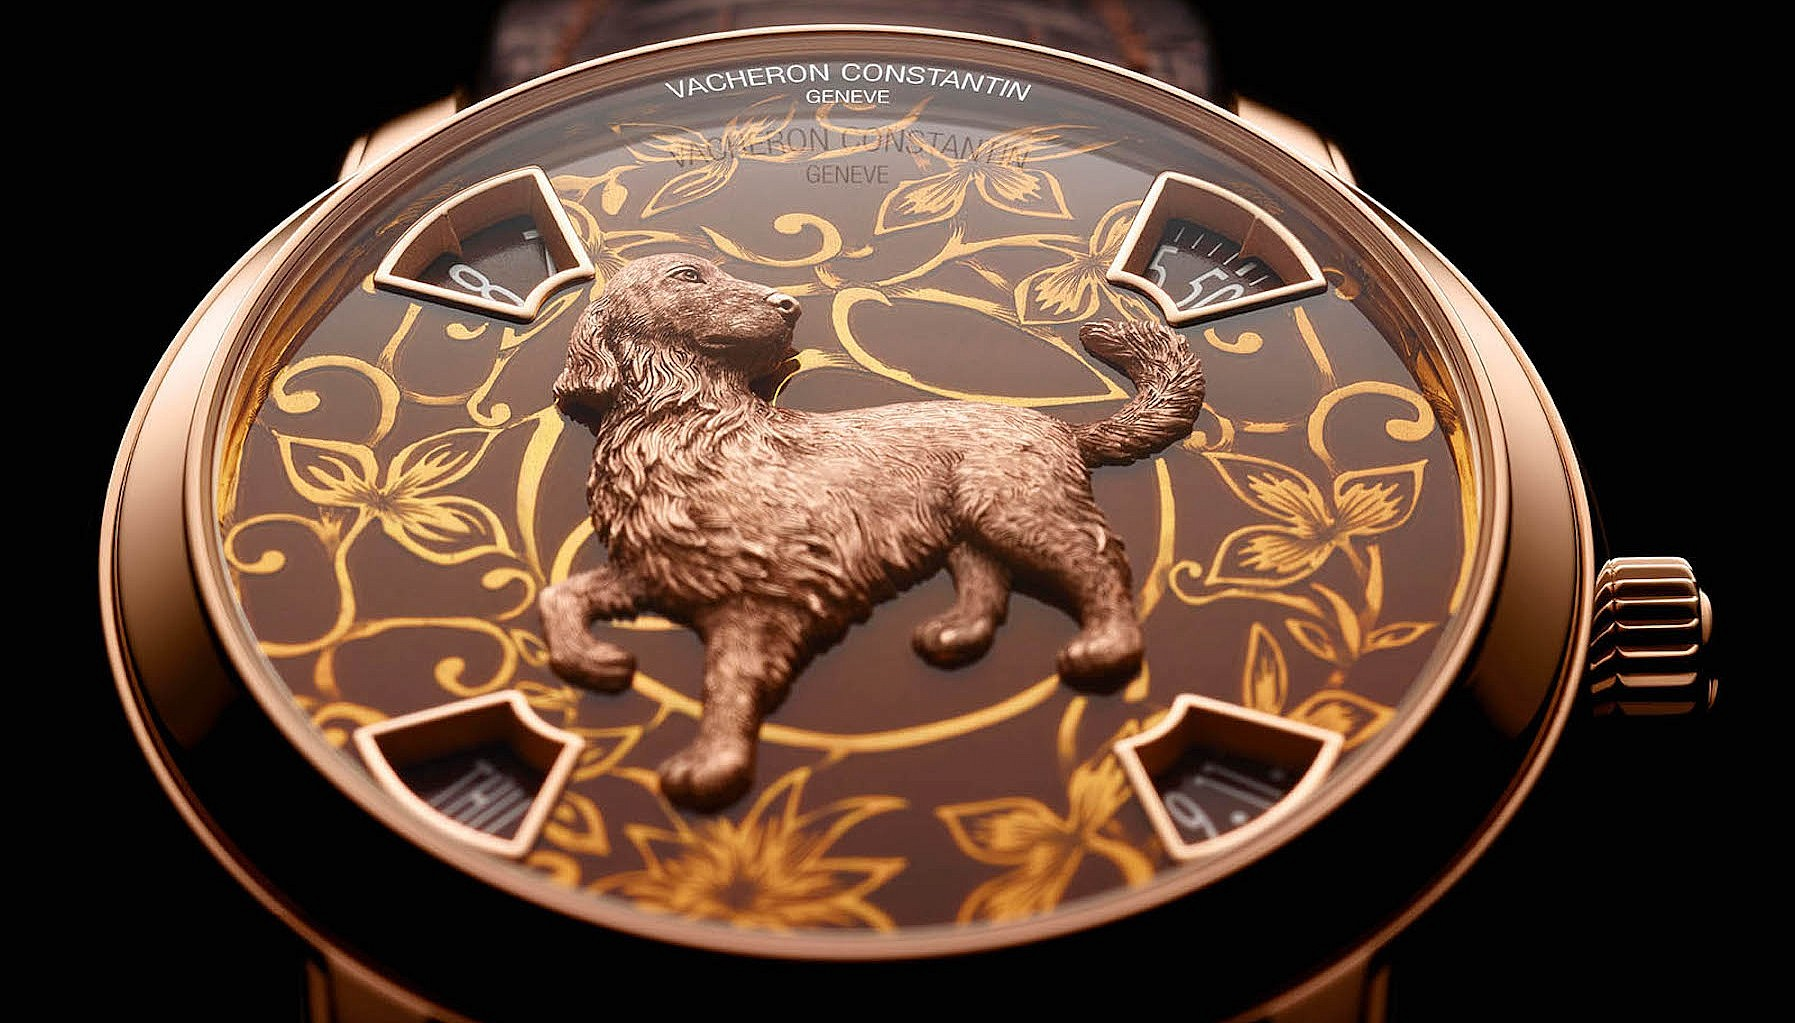 Year of the Dog 2018 watches